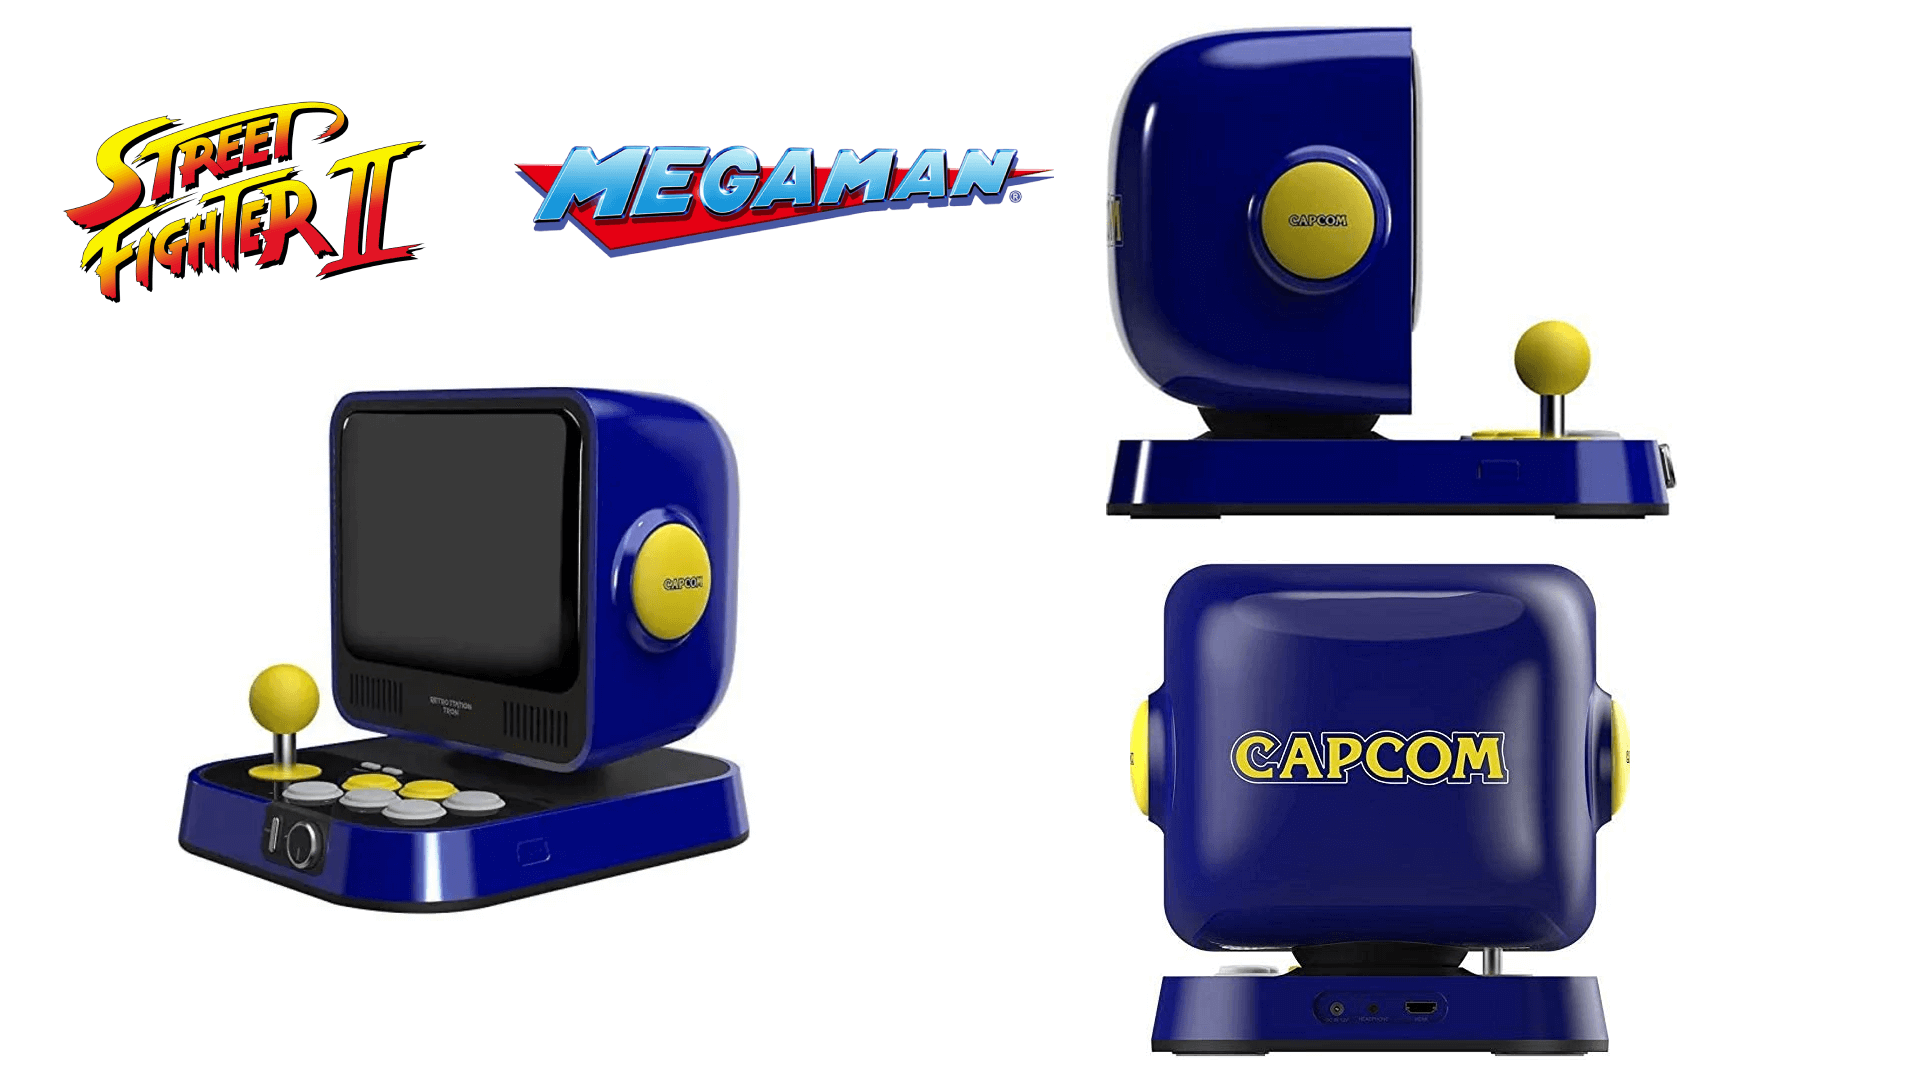 Capcom's Retro Station - a New Device to Play Street Fighter II